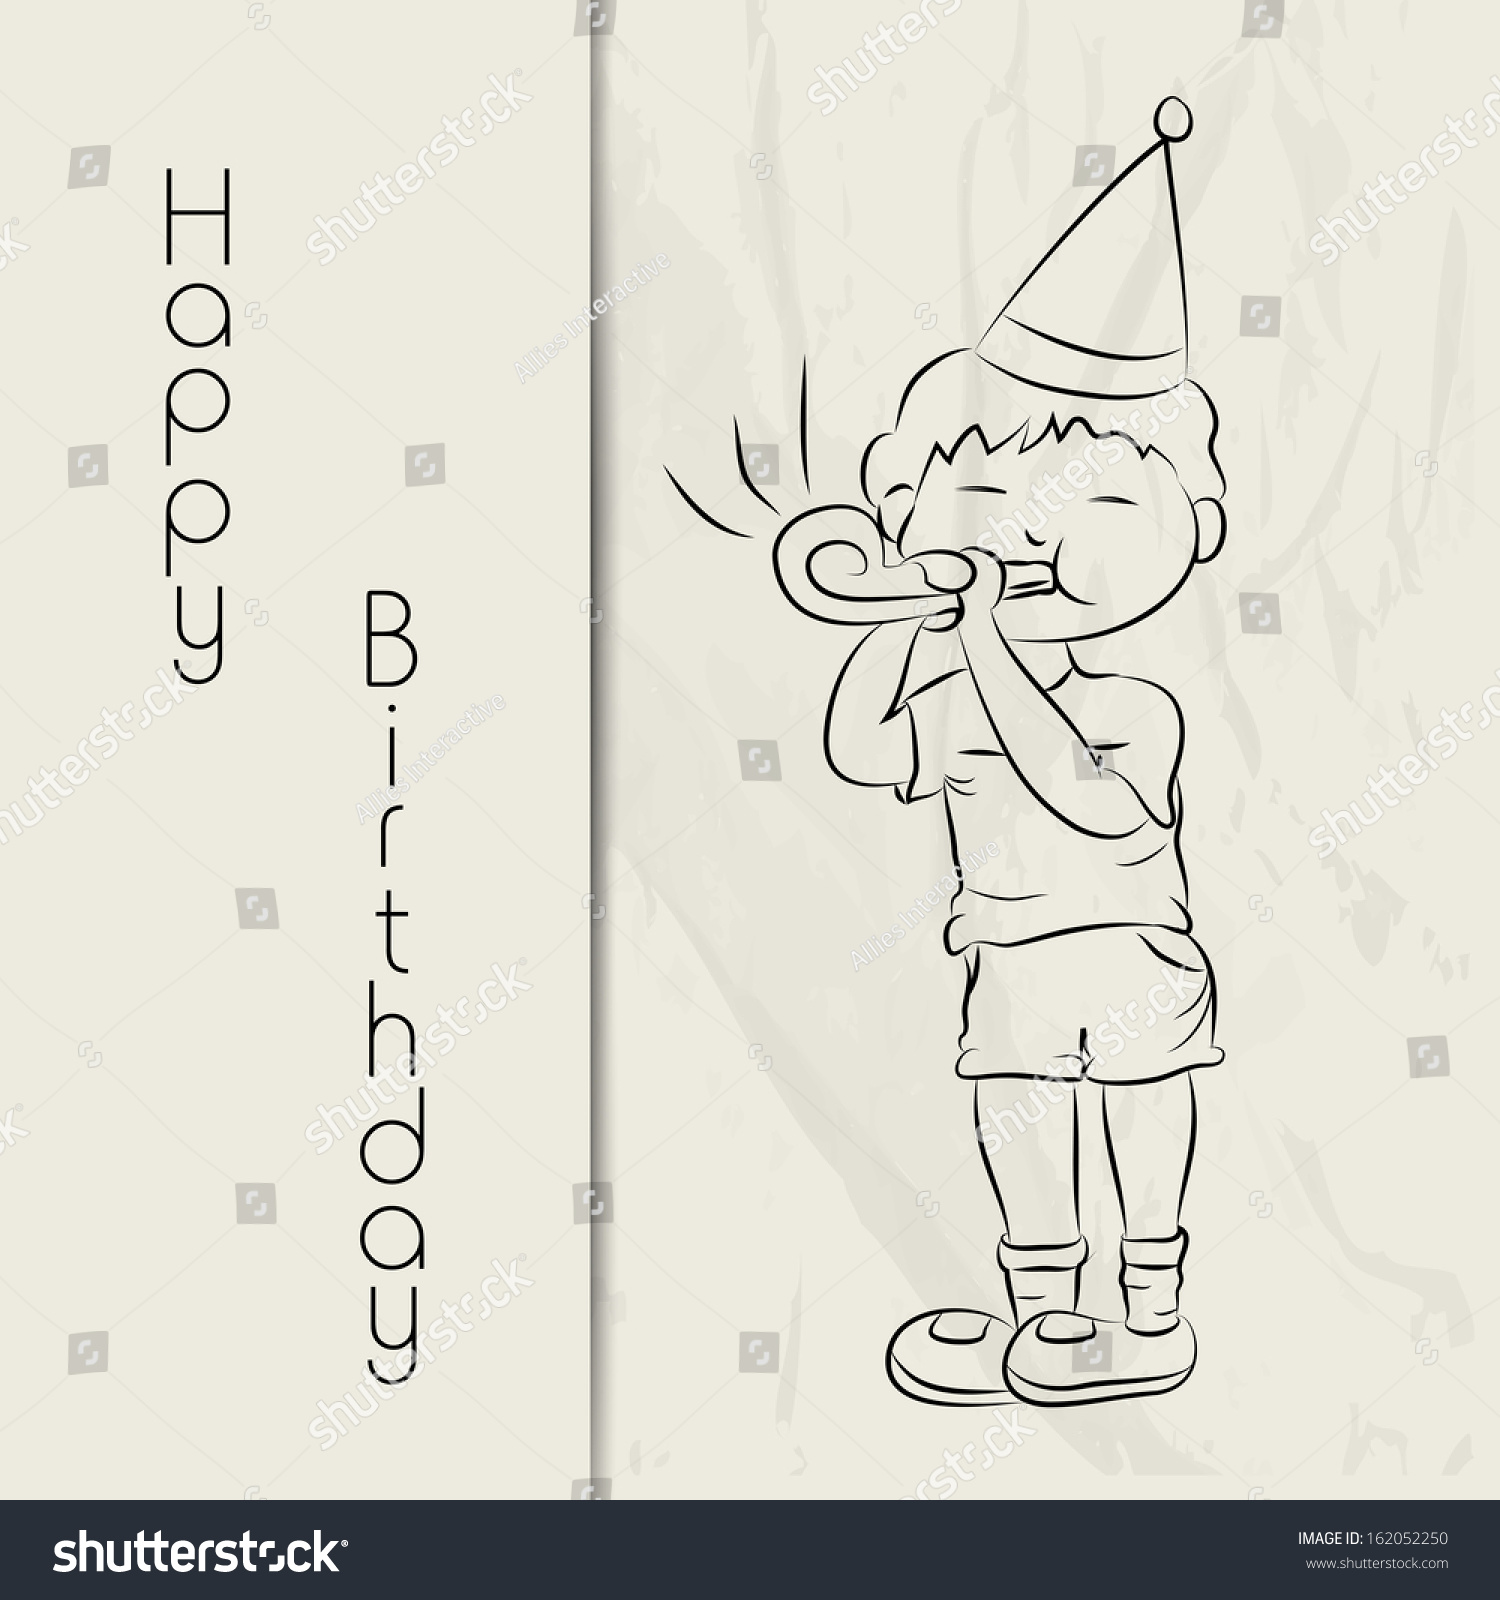 Happy birthday greeting card gift card stock photo photo vector happy birthday greeting card or gift card with sketch of a cute little boy in bookmarktalkfo Gallery